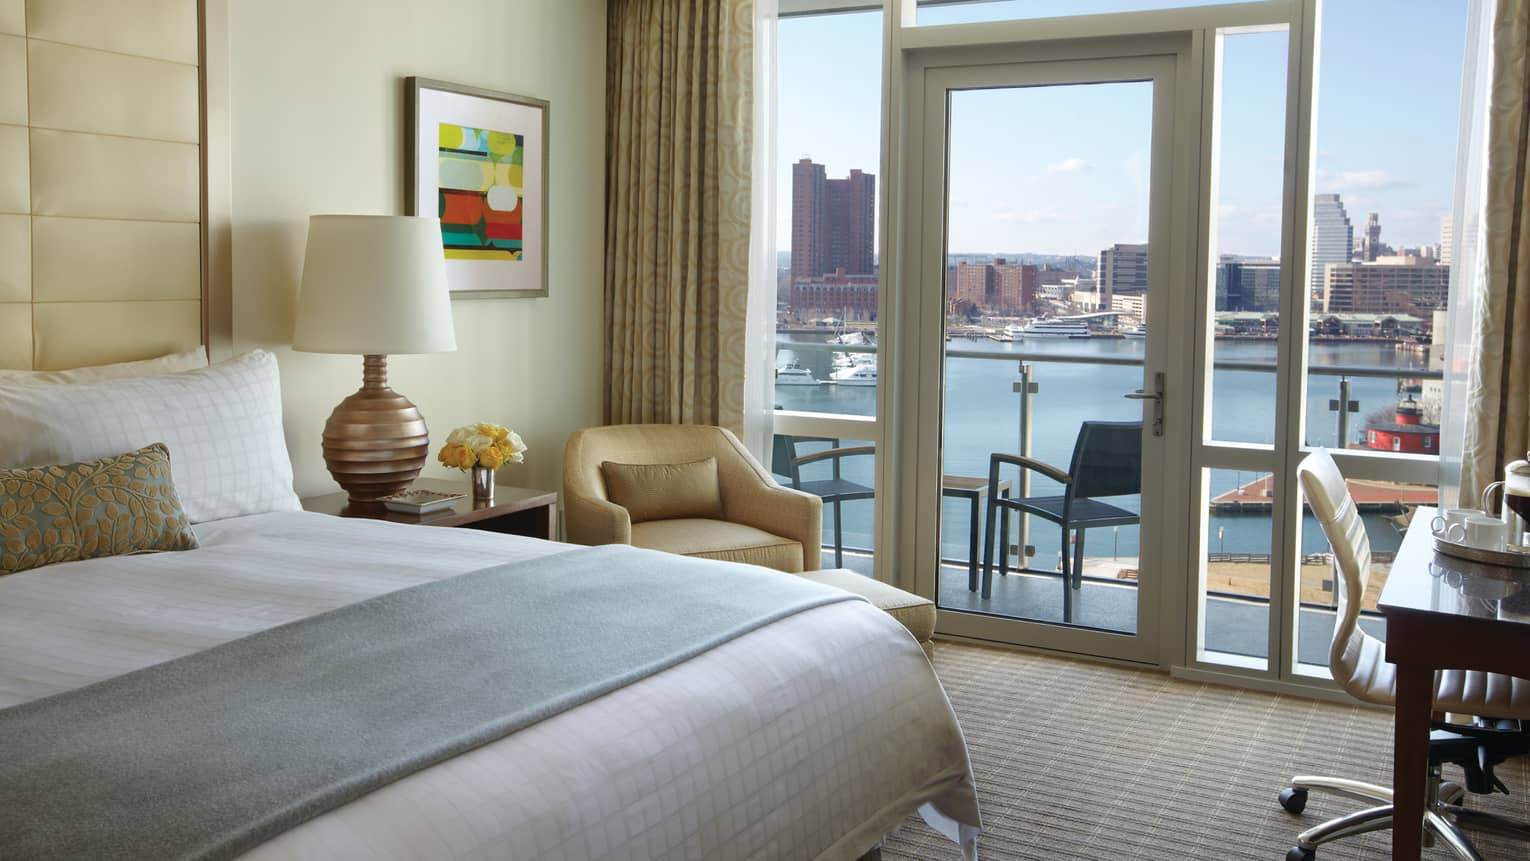 Edge of bed with folded blue blanket, armchair by glass door, balcony door, harbour view